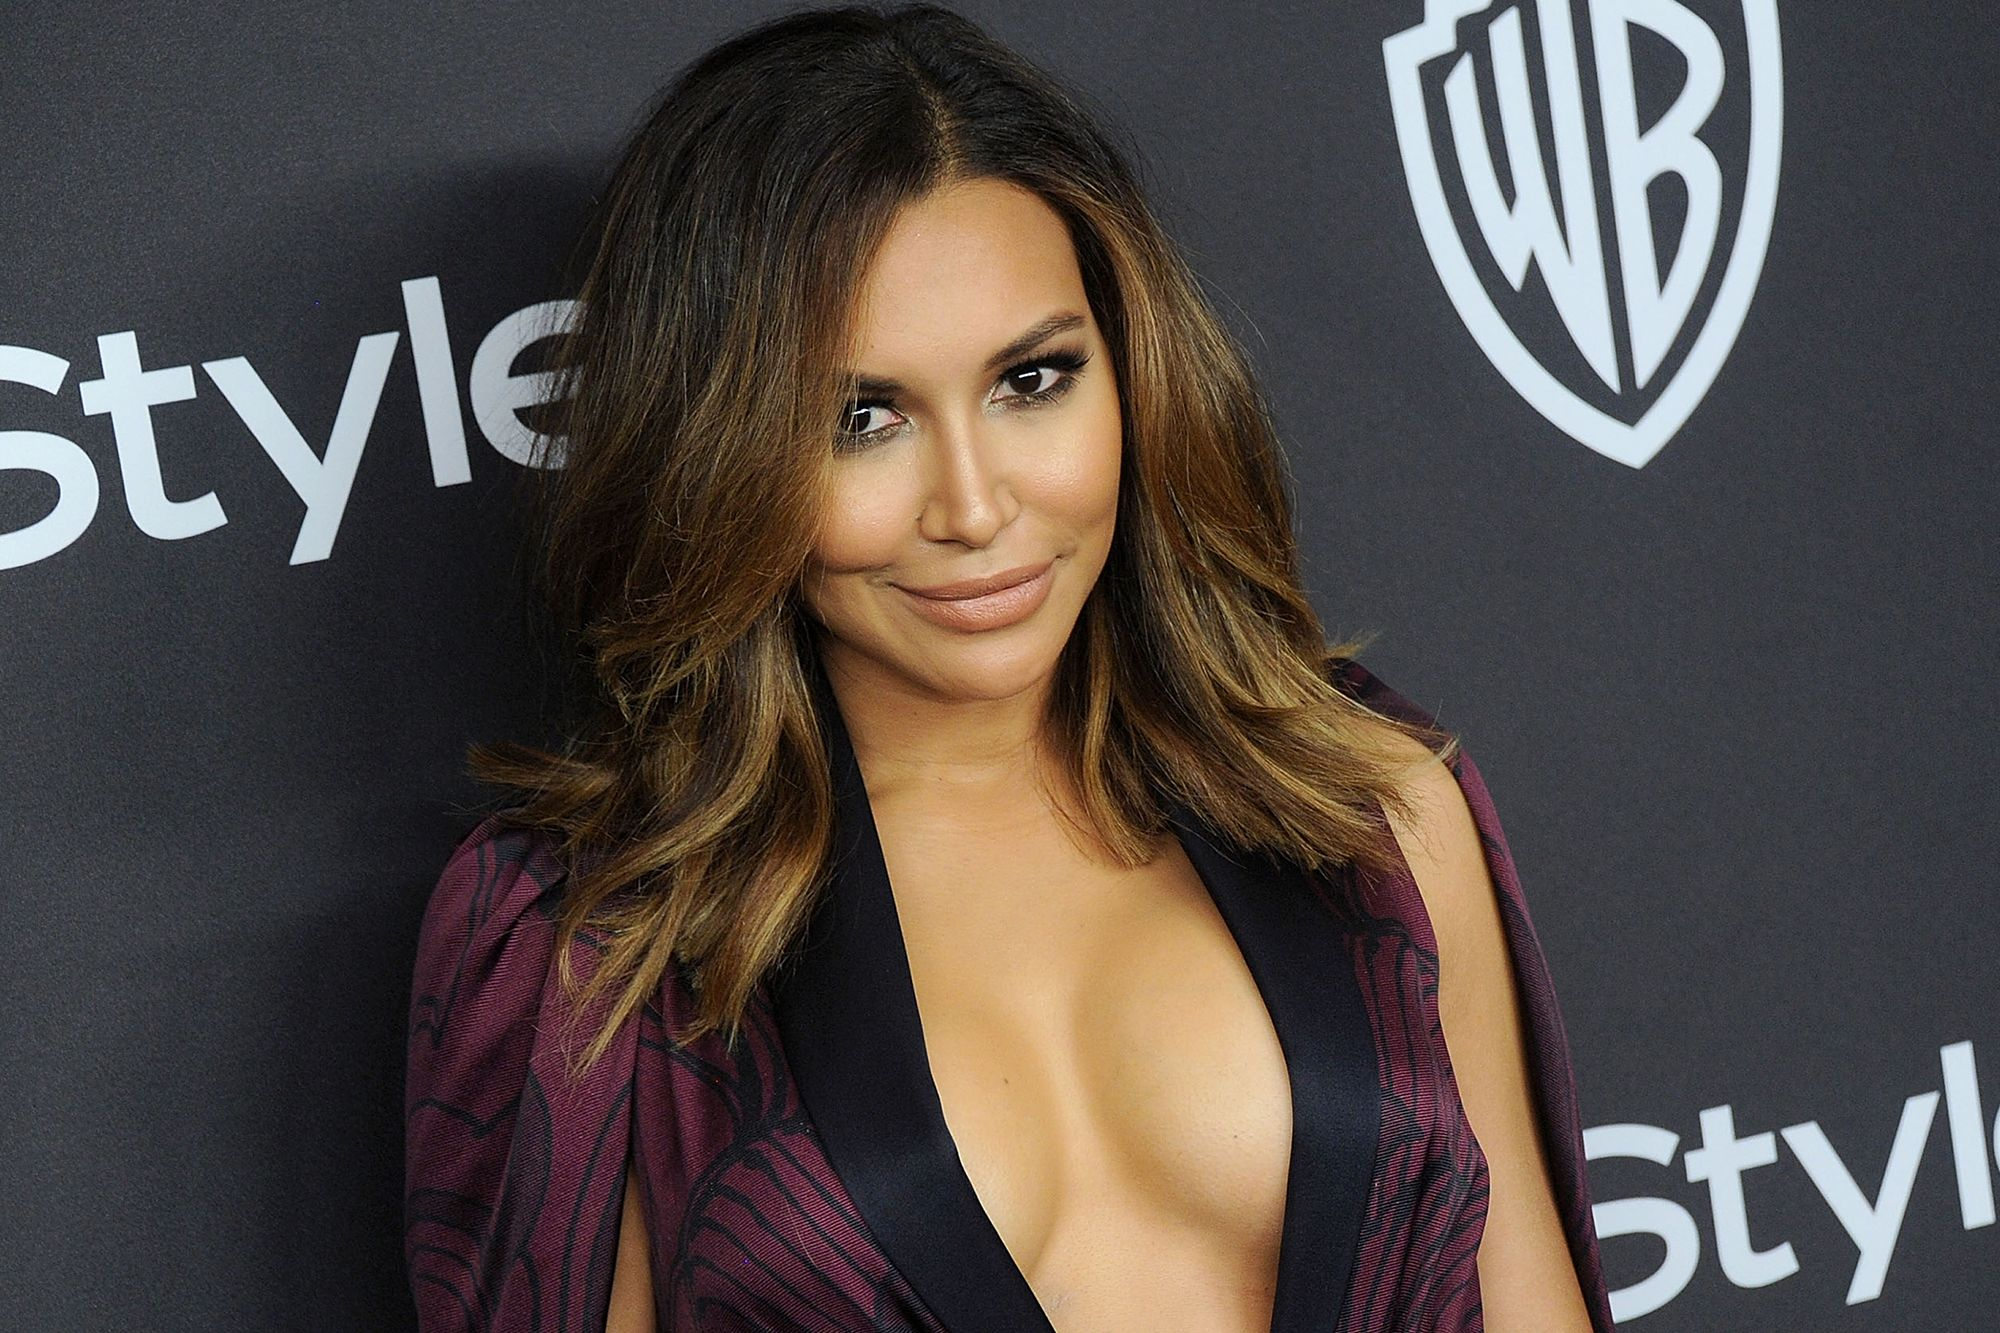 Glee Actress Naya Rivera Dead: Naya Rivera Search Updates - Sheriff Department's Diver is 'Confident' about finding her body